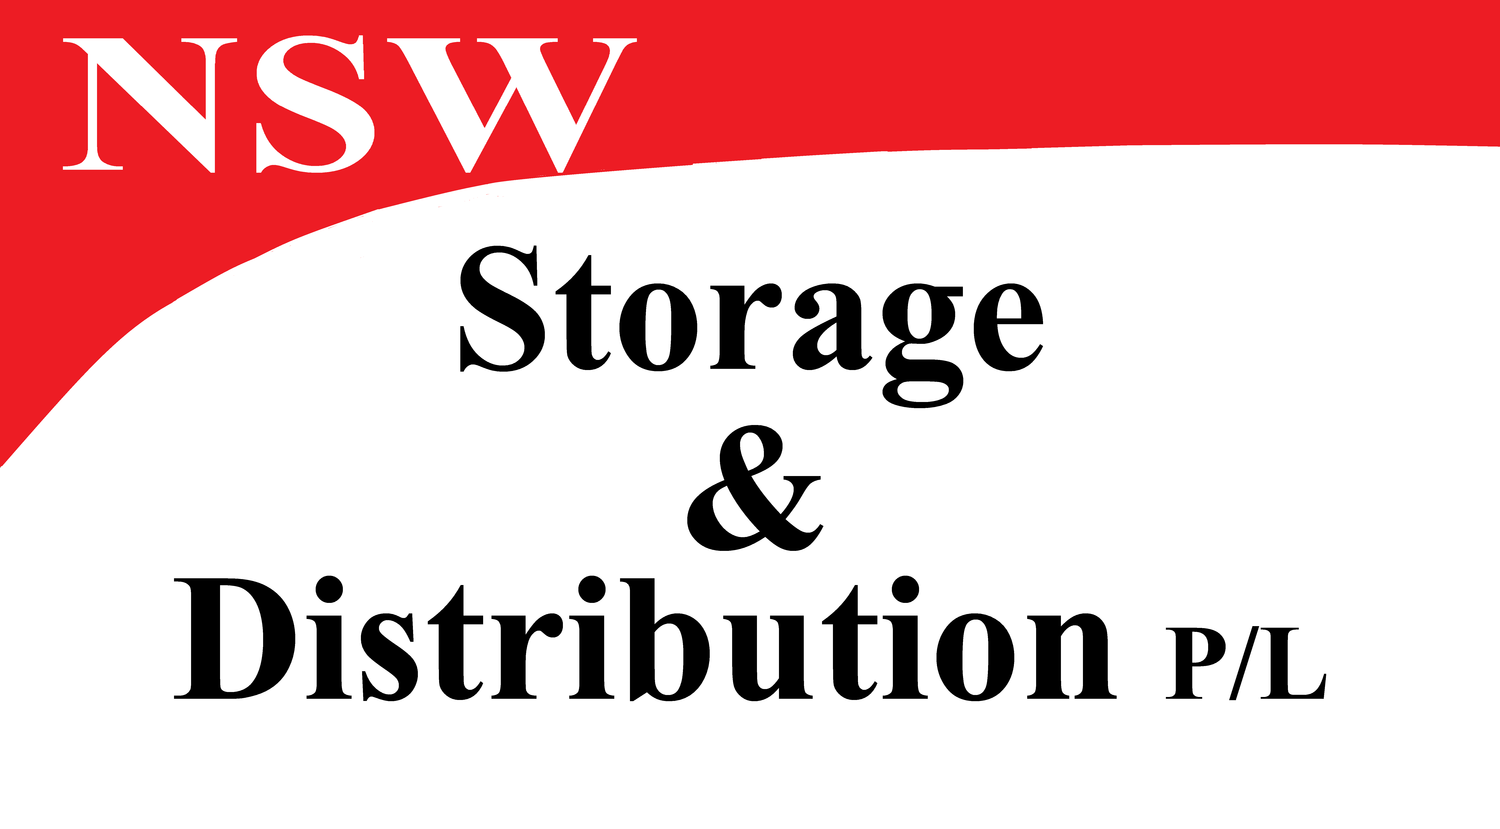 NSW Storage and Distribution